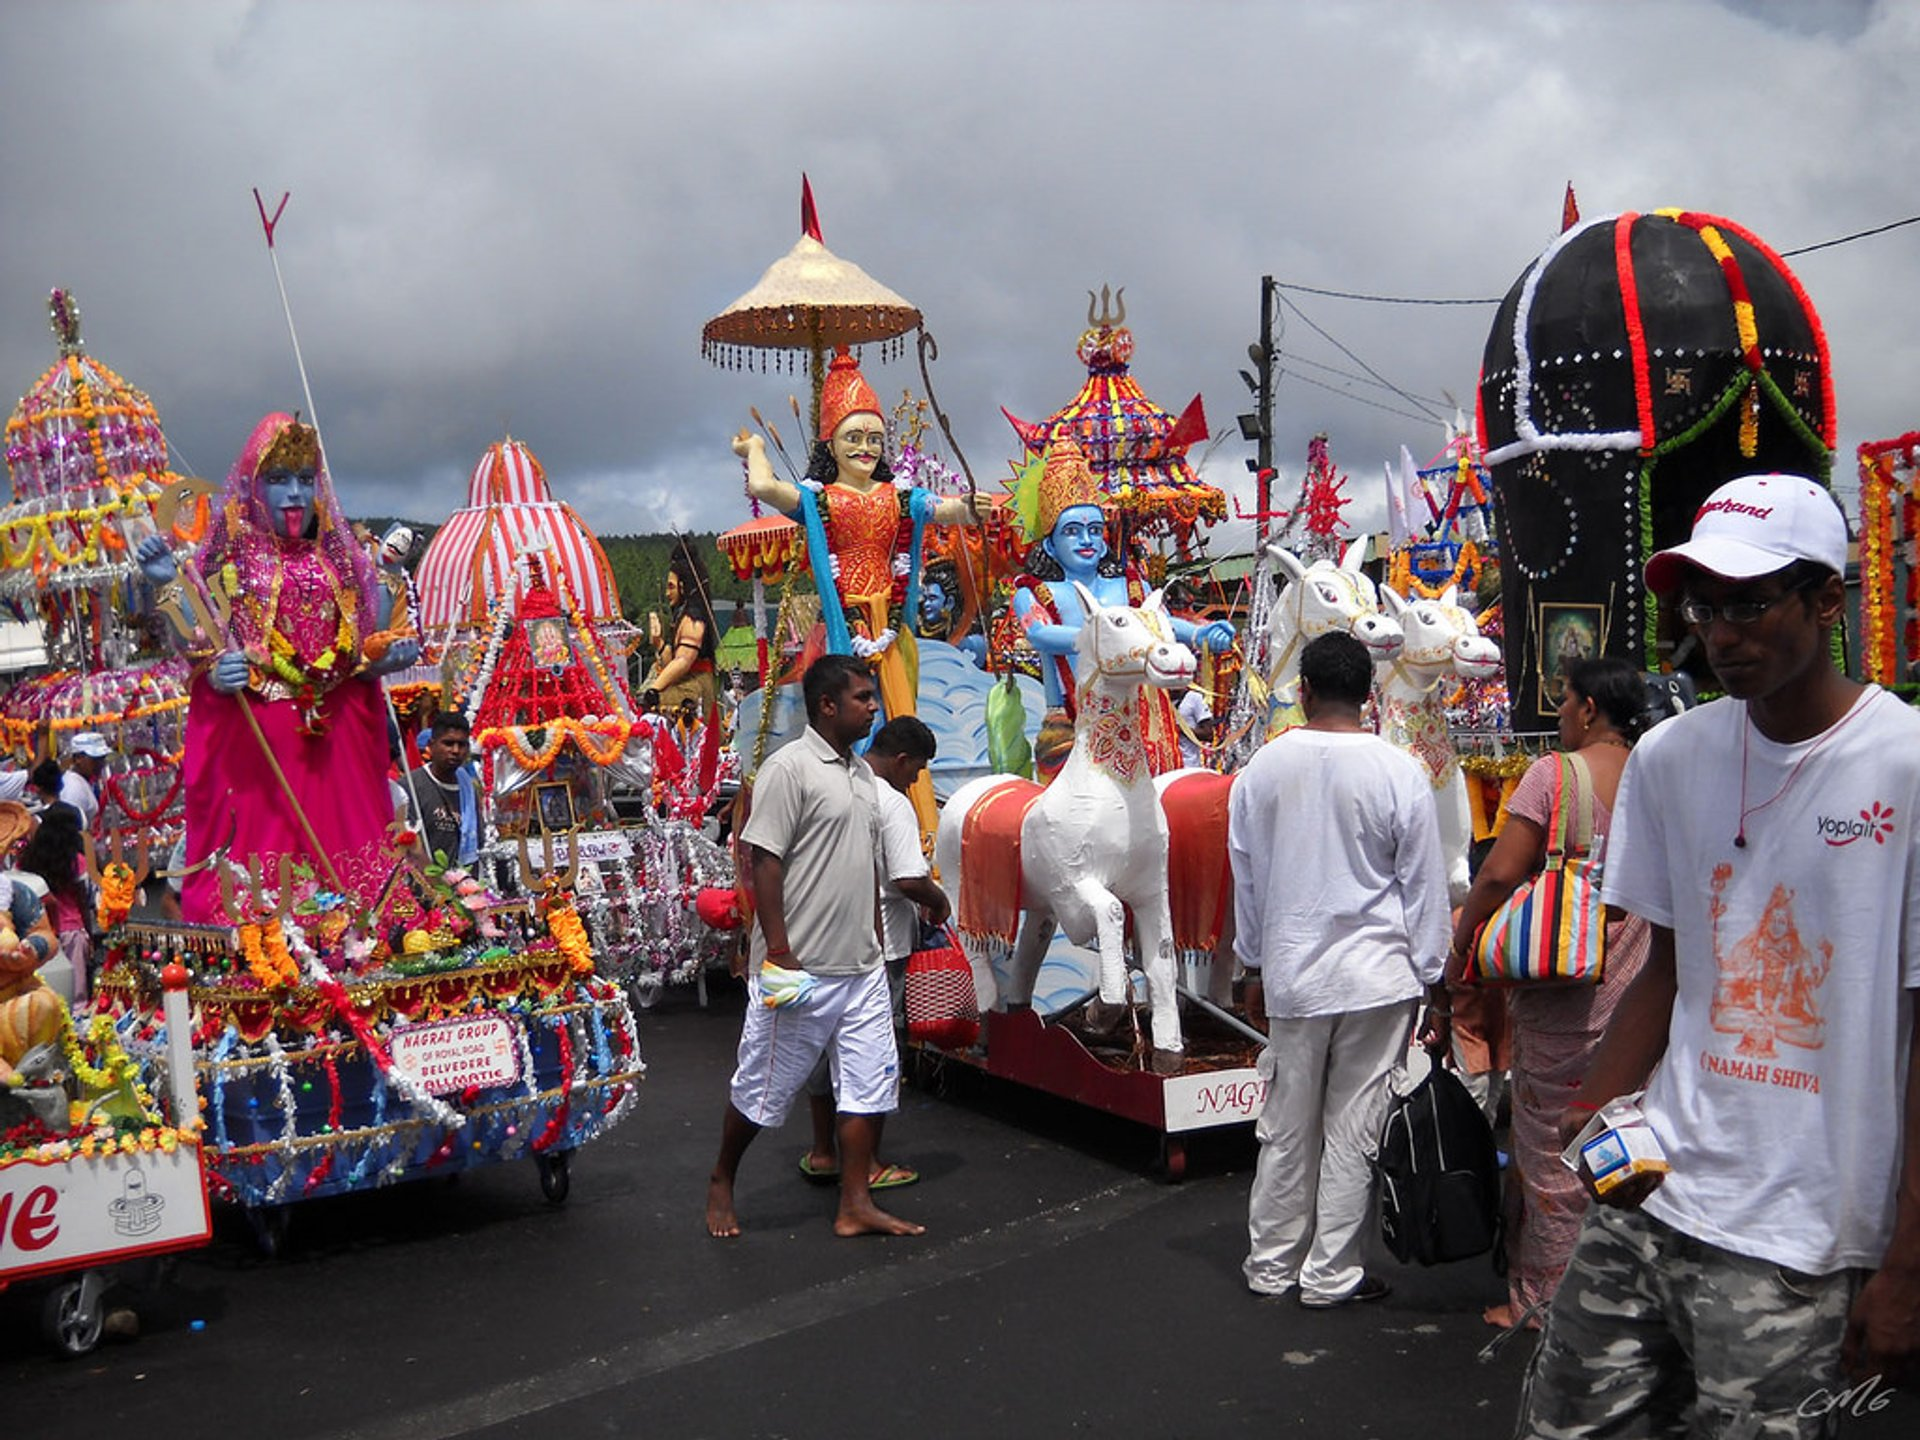 Maha Shivaratree Celebration in Mauritius 2020 - Best Time